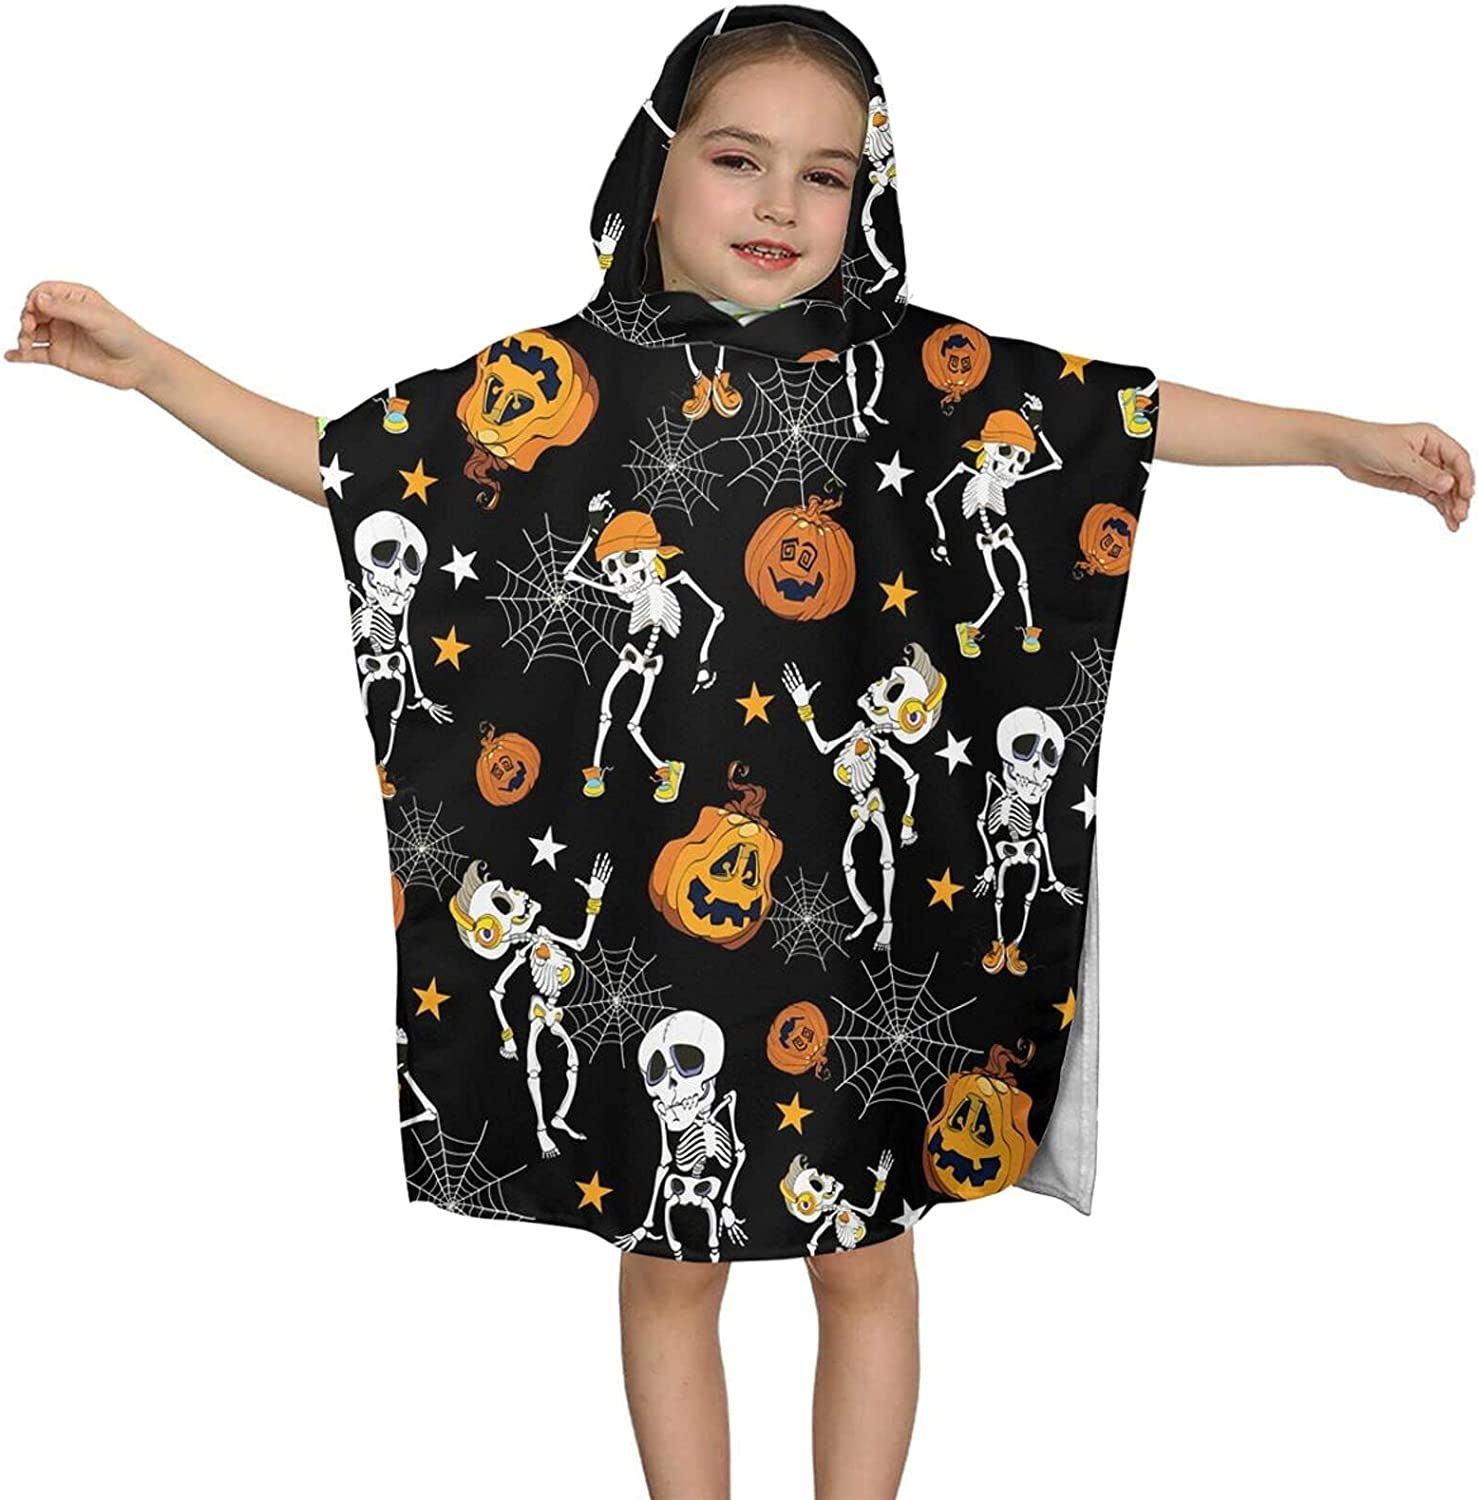 Free shipping on posting reviews Hooded Bath Towel Skeletons Wrap and Save money Pumpkins Kids